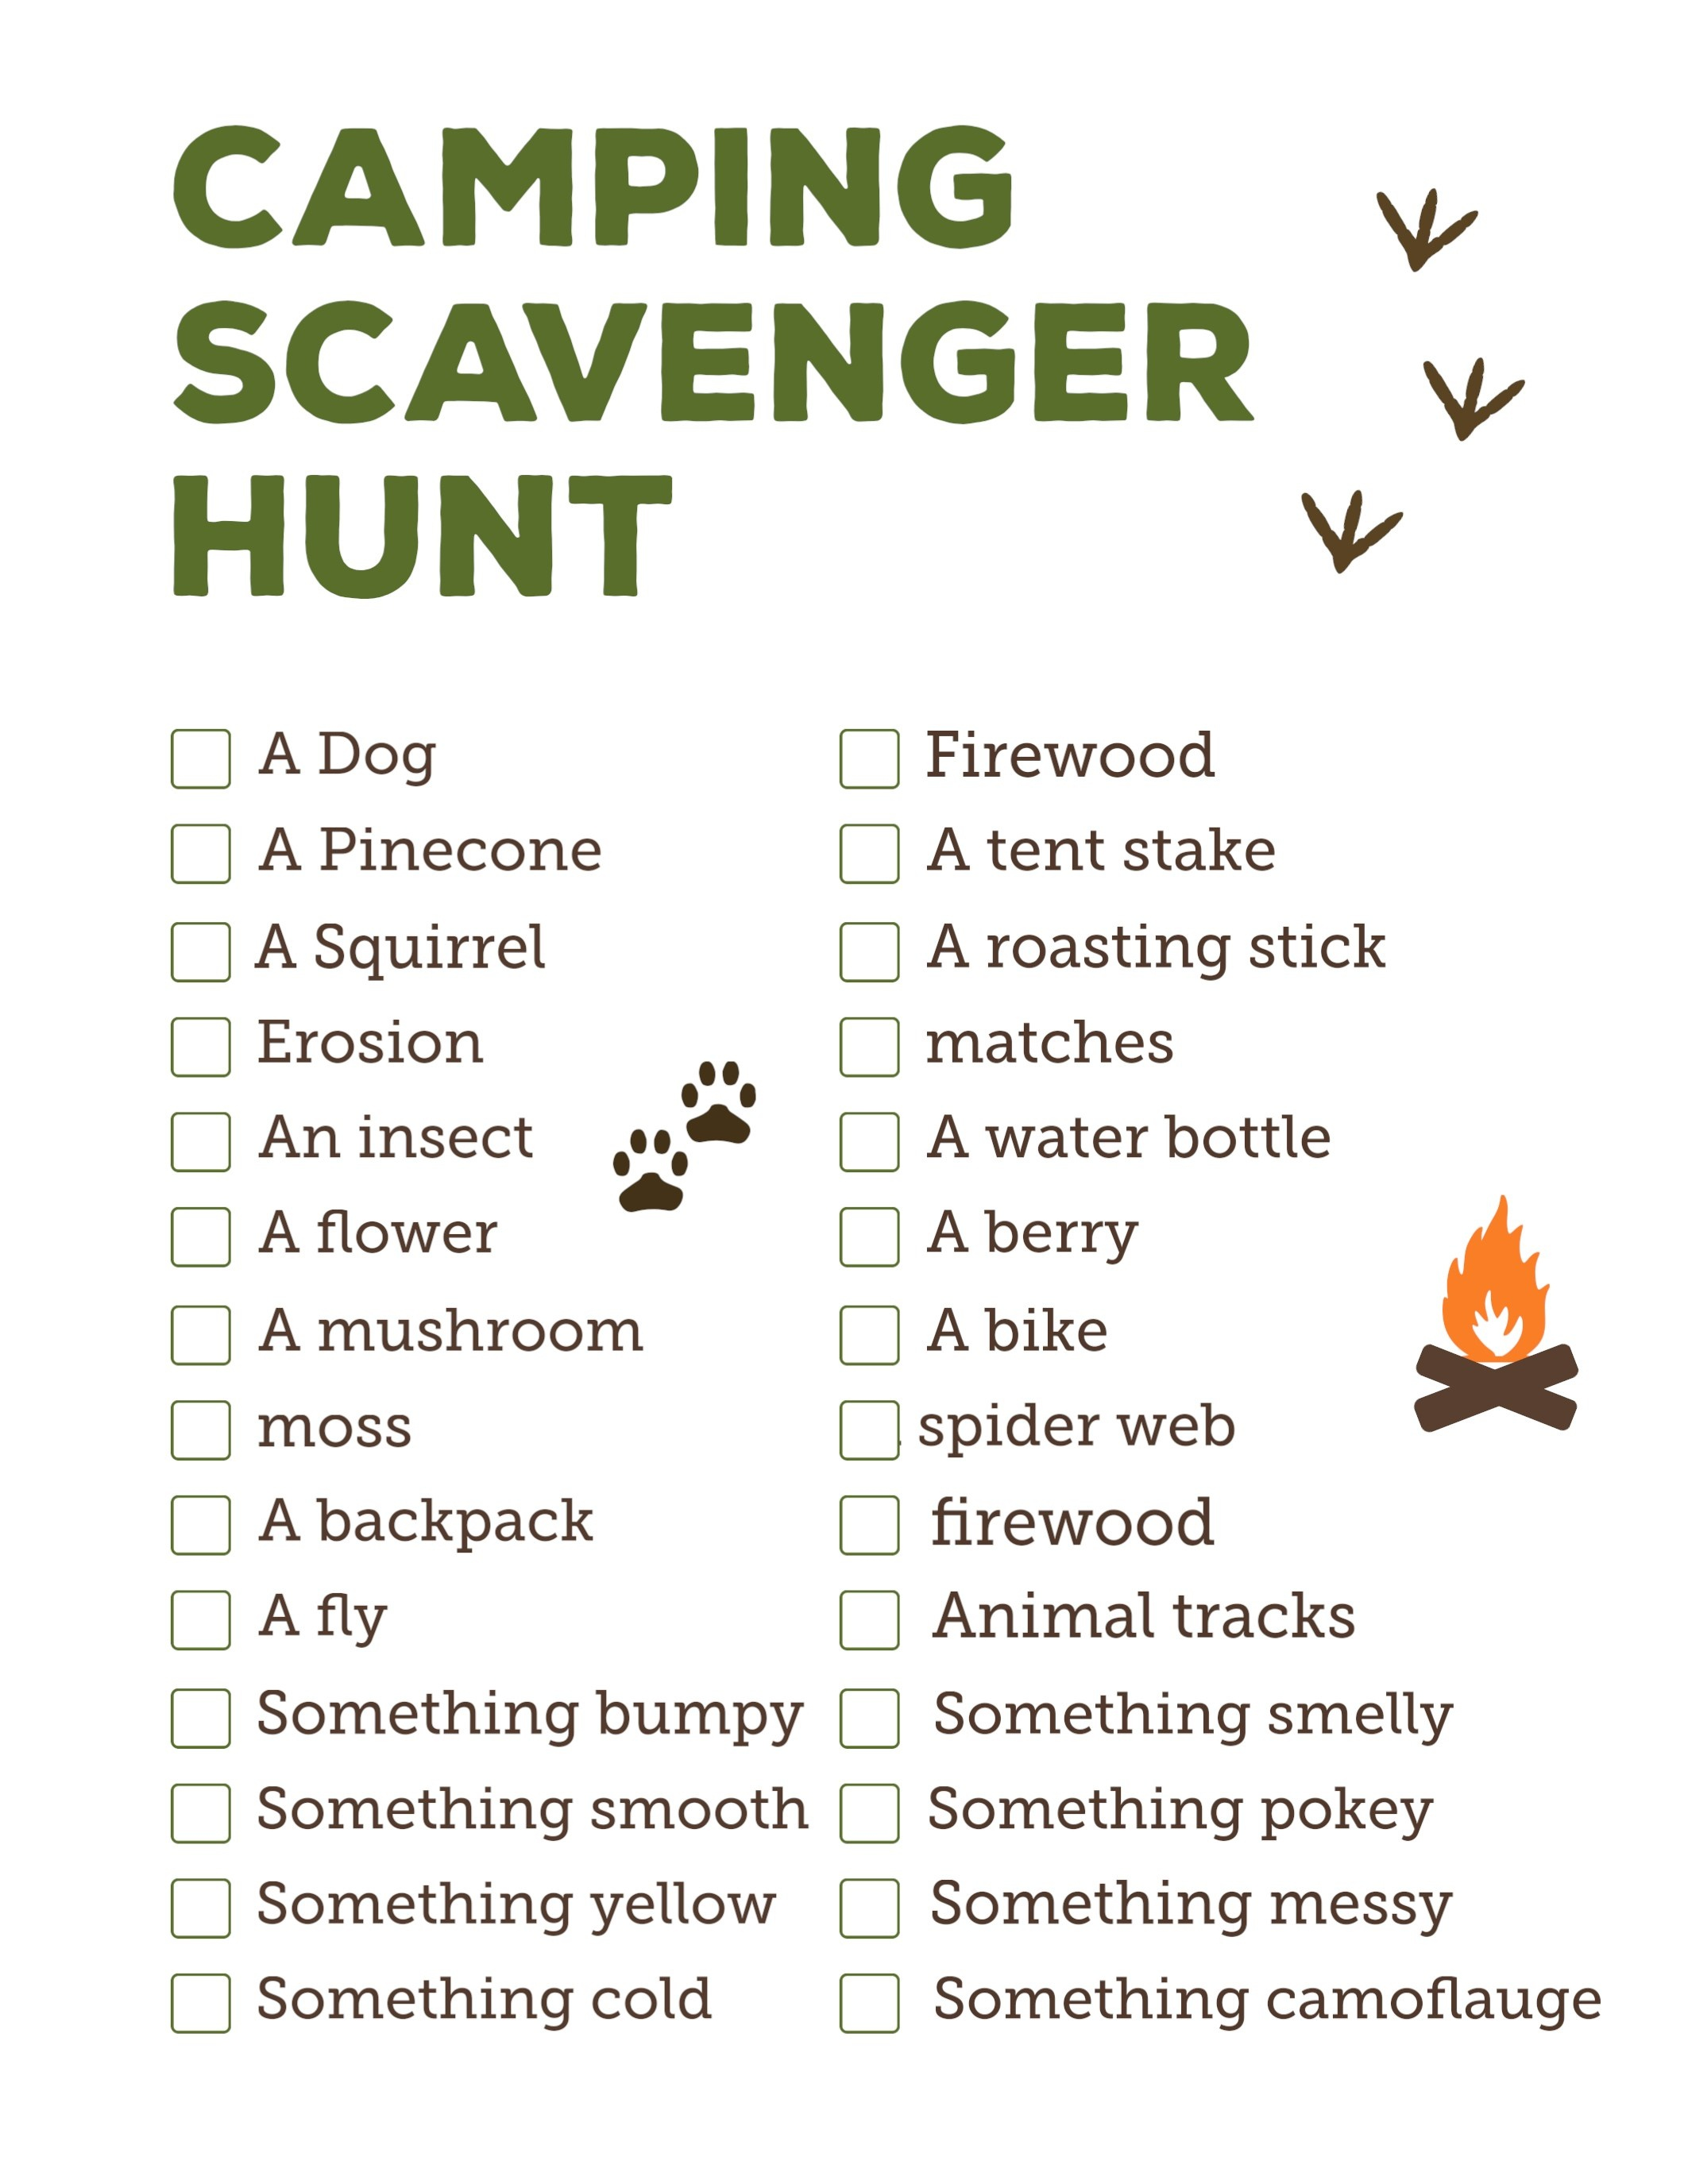 Camping Scavenger Hunt Printable - Paper Trail Design - Free Printable Scavenger Hunt